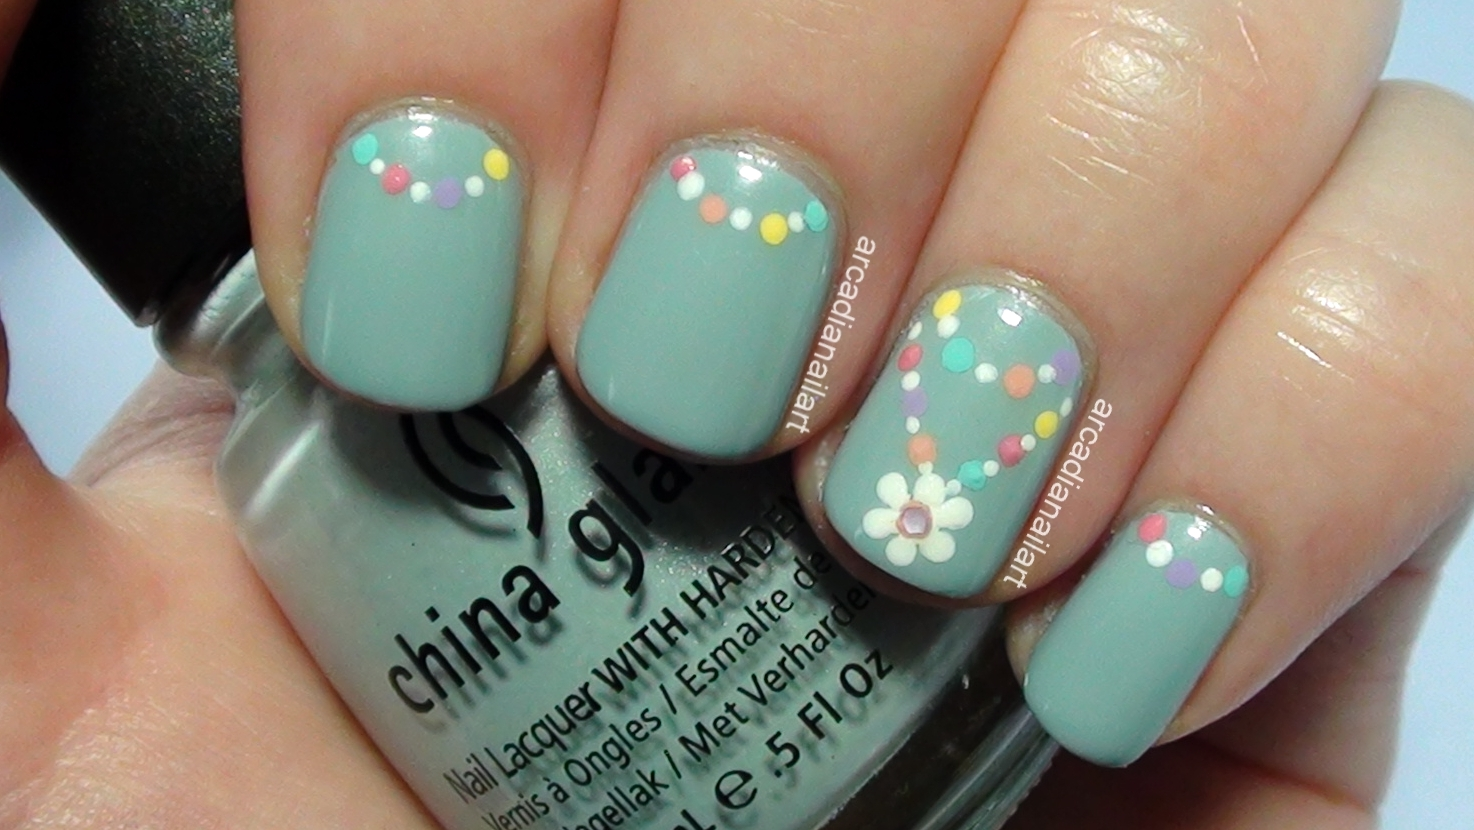 ArcadiaNailArt: March 2013